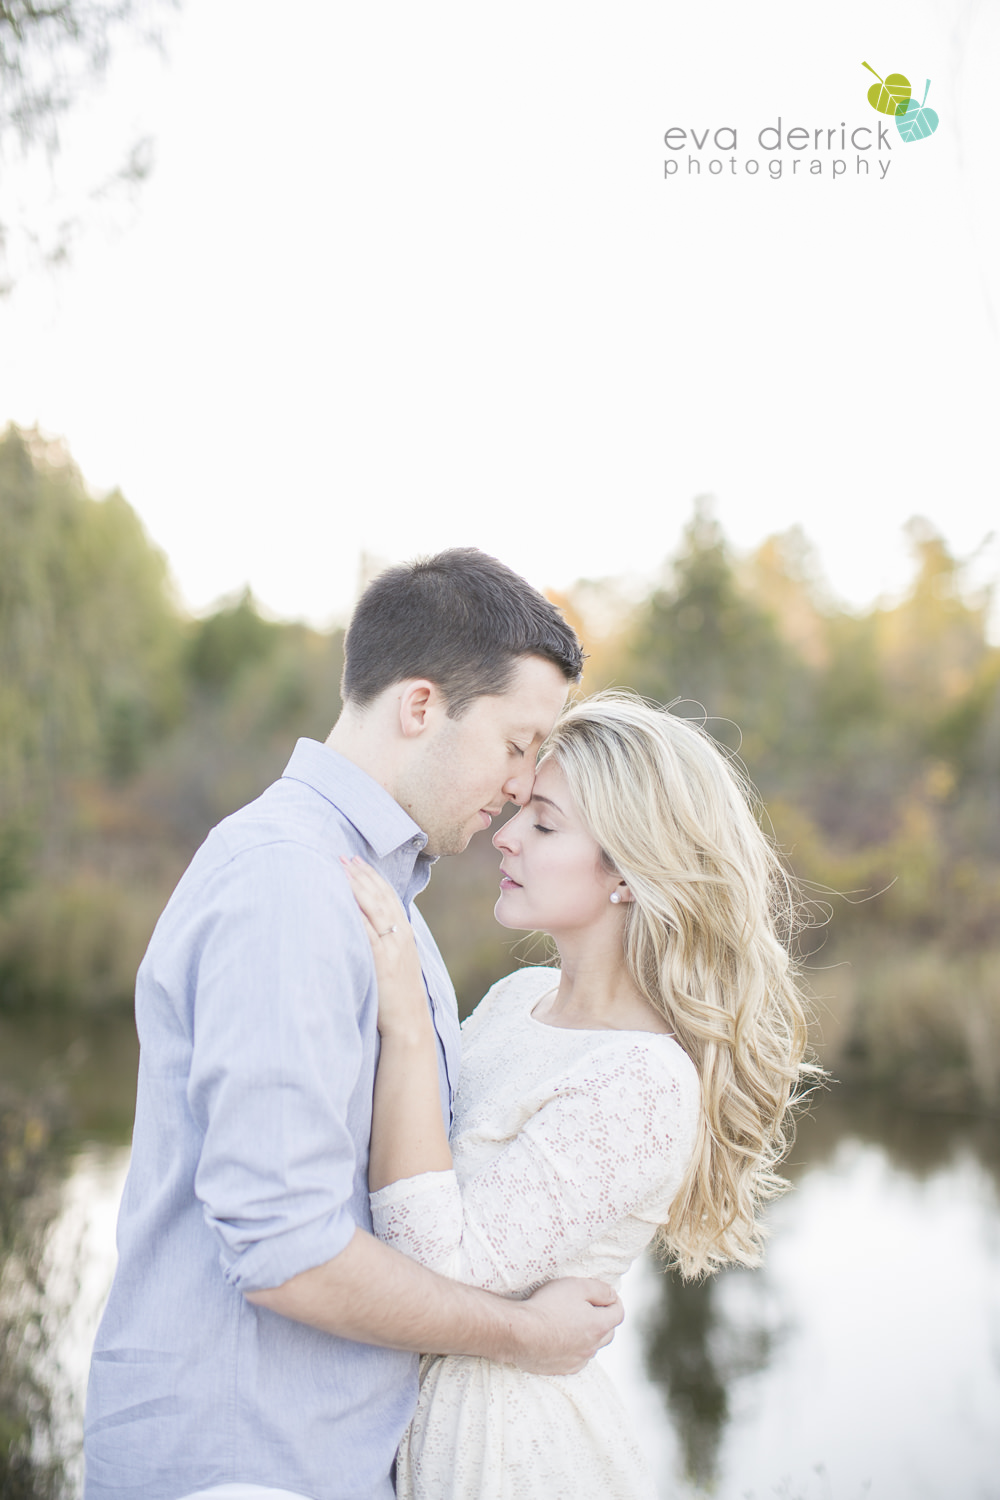 Albion-Hills-Photographer-Engagement-Session-Alanna-Matt-photography-by-Eva-Derrick-Photography-013.JPG